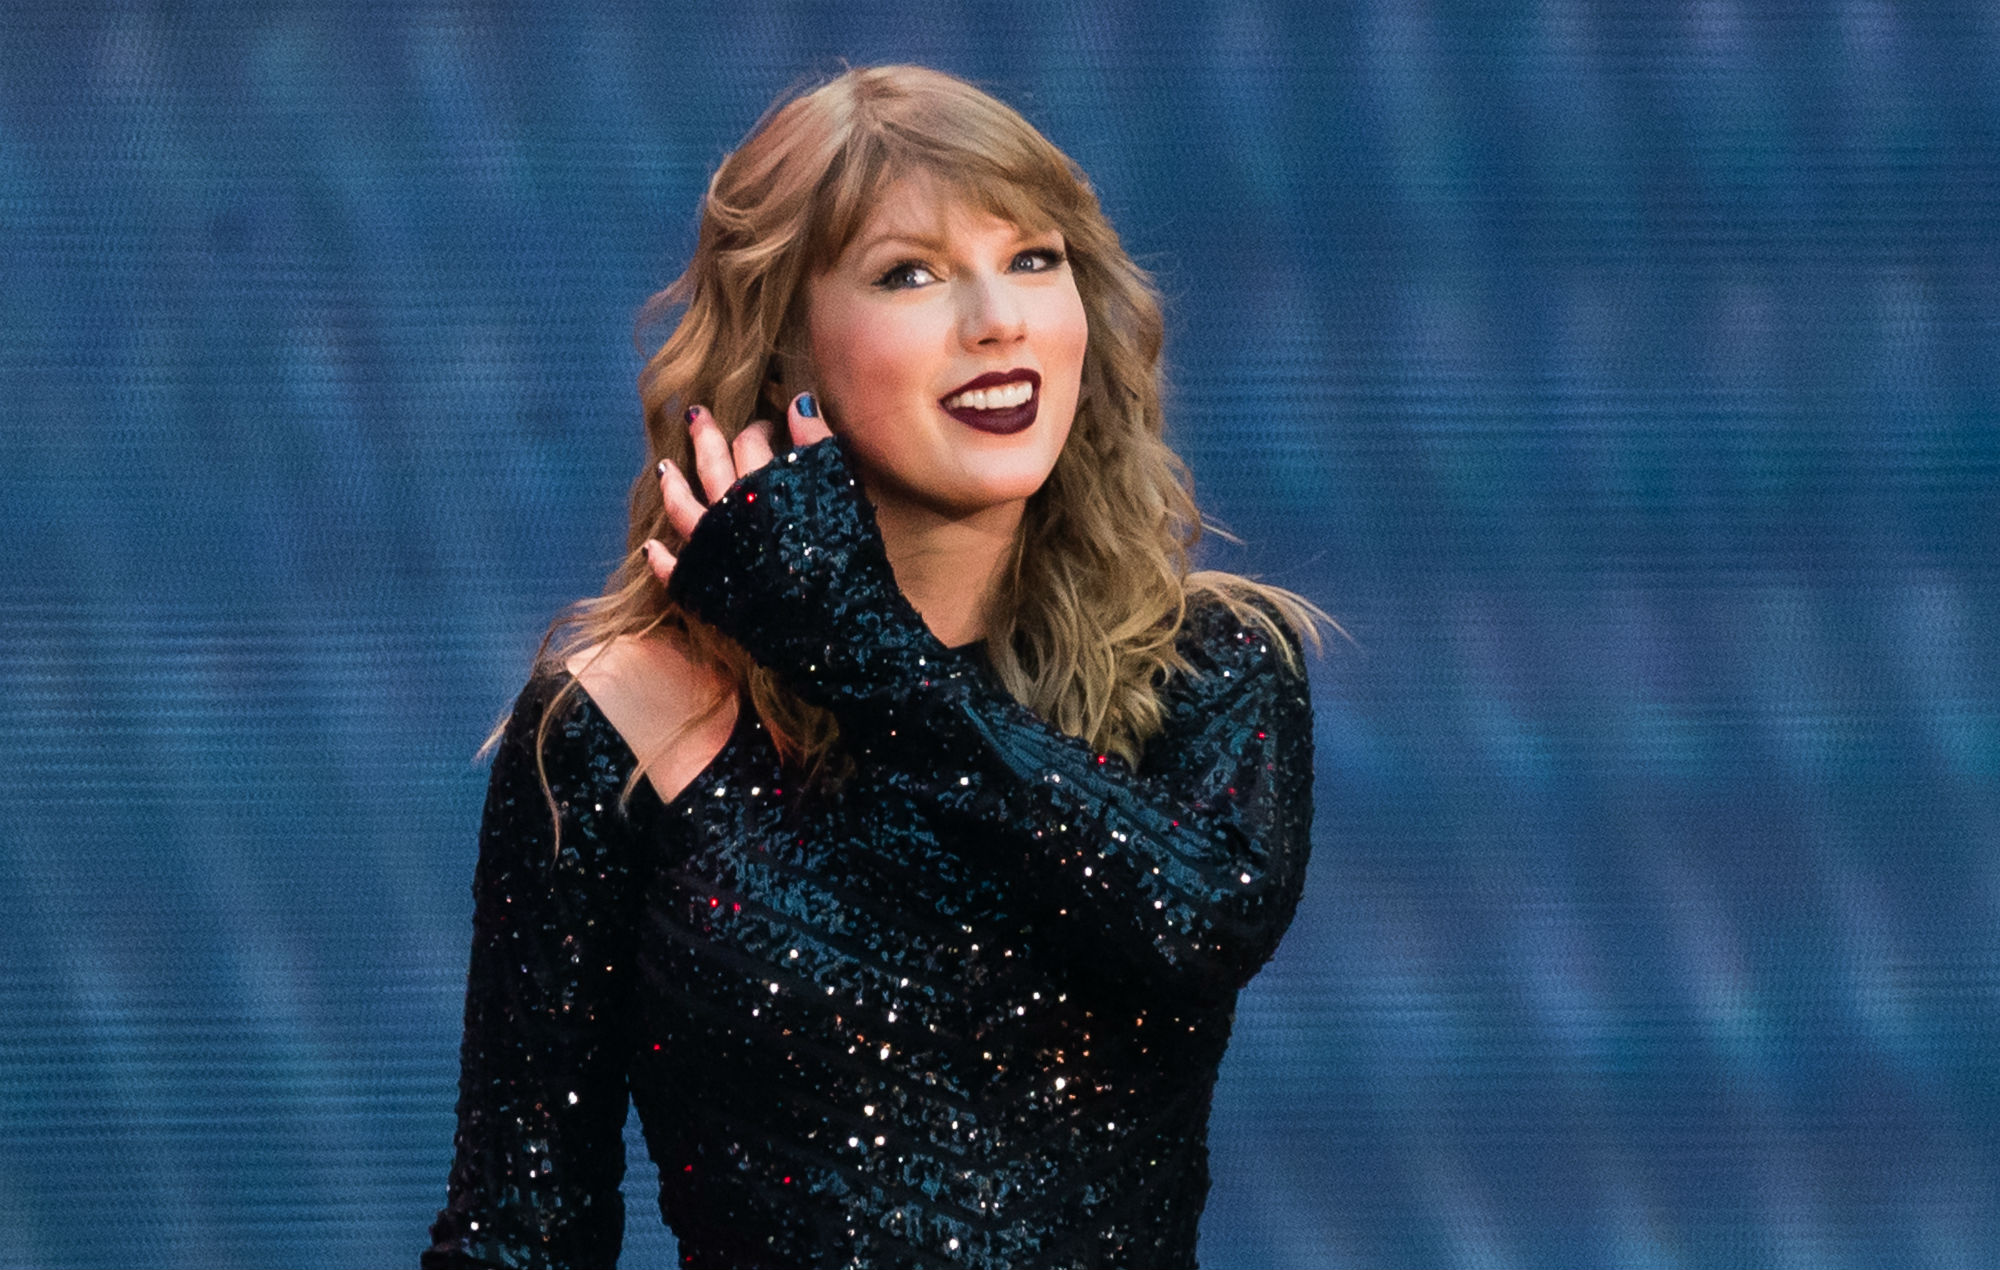 Taylor Swift makes Billboard 200 history with most weeks at No.1